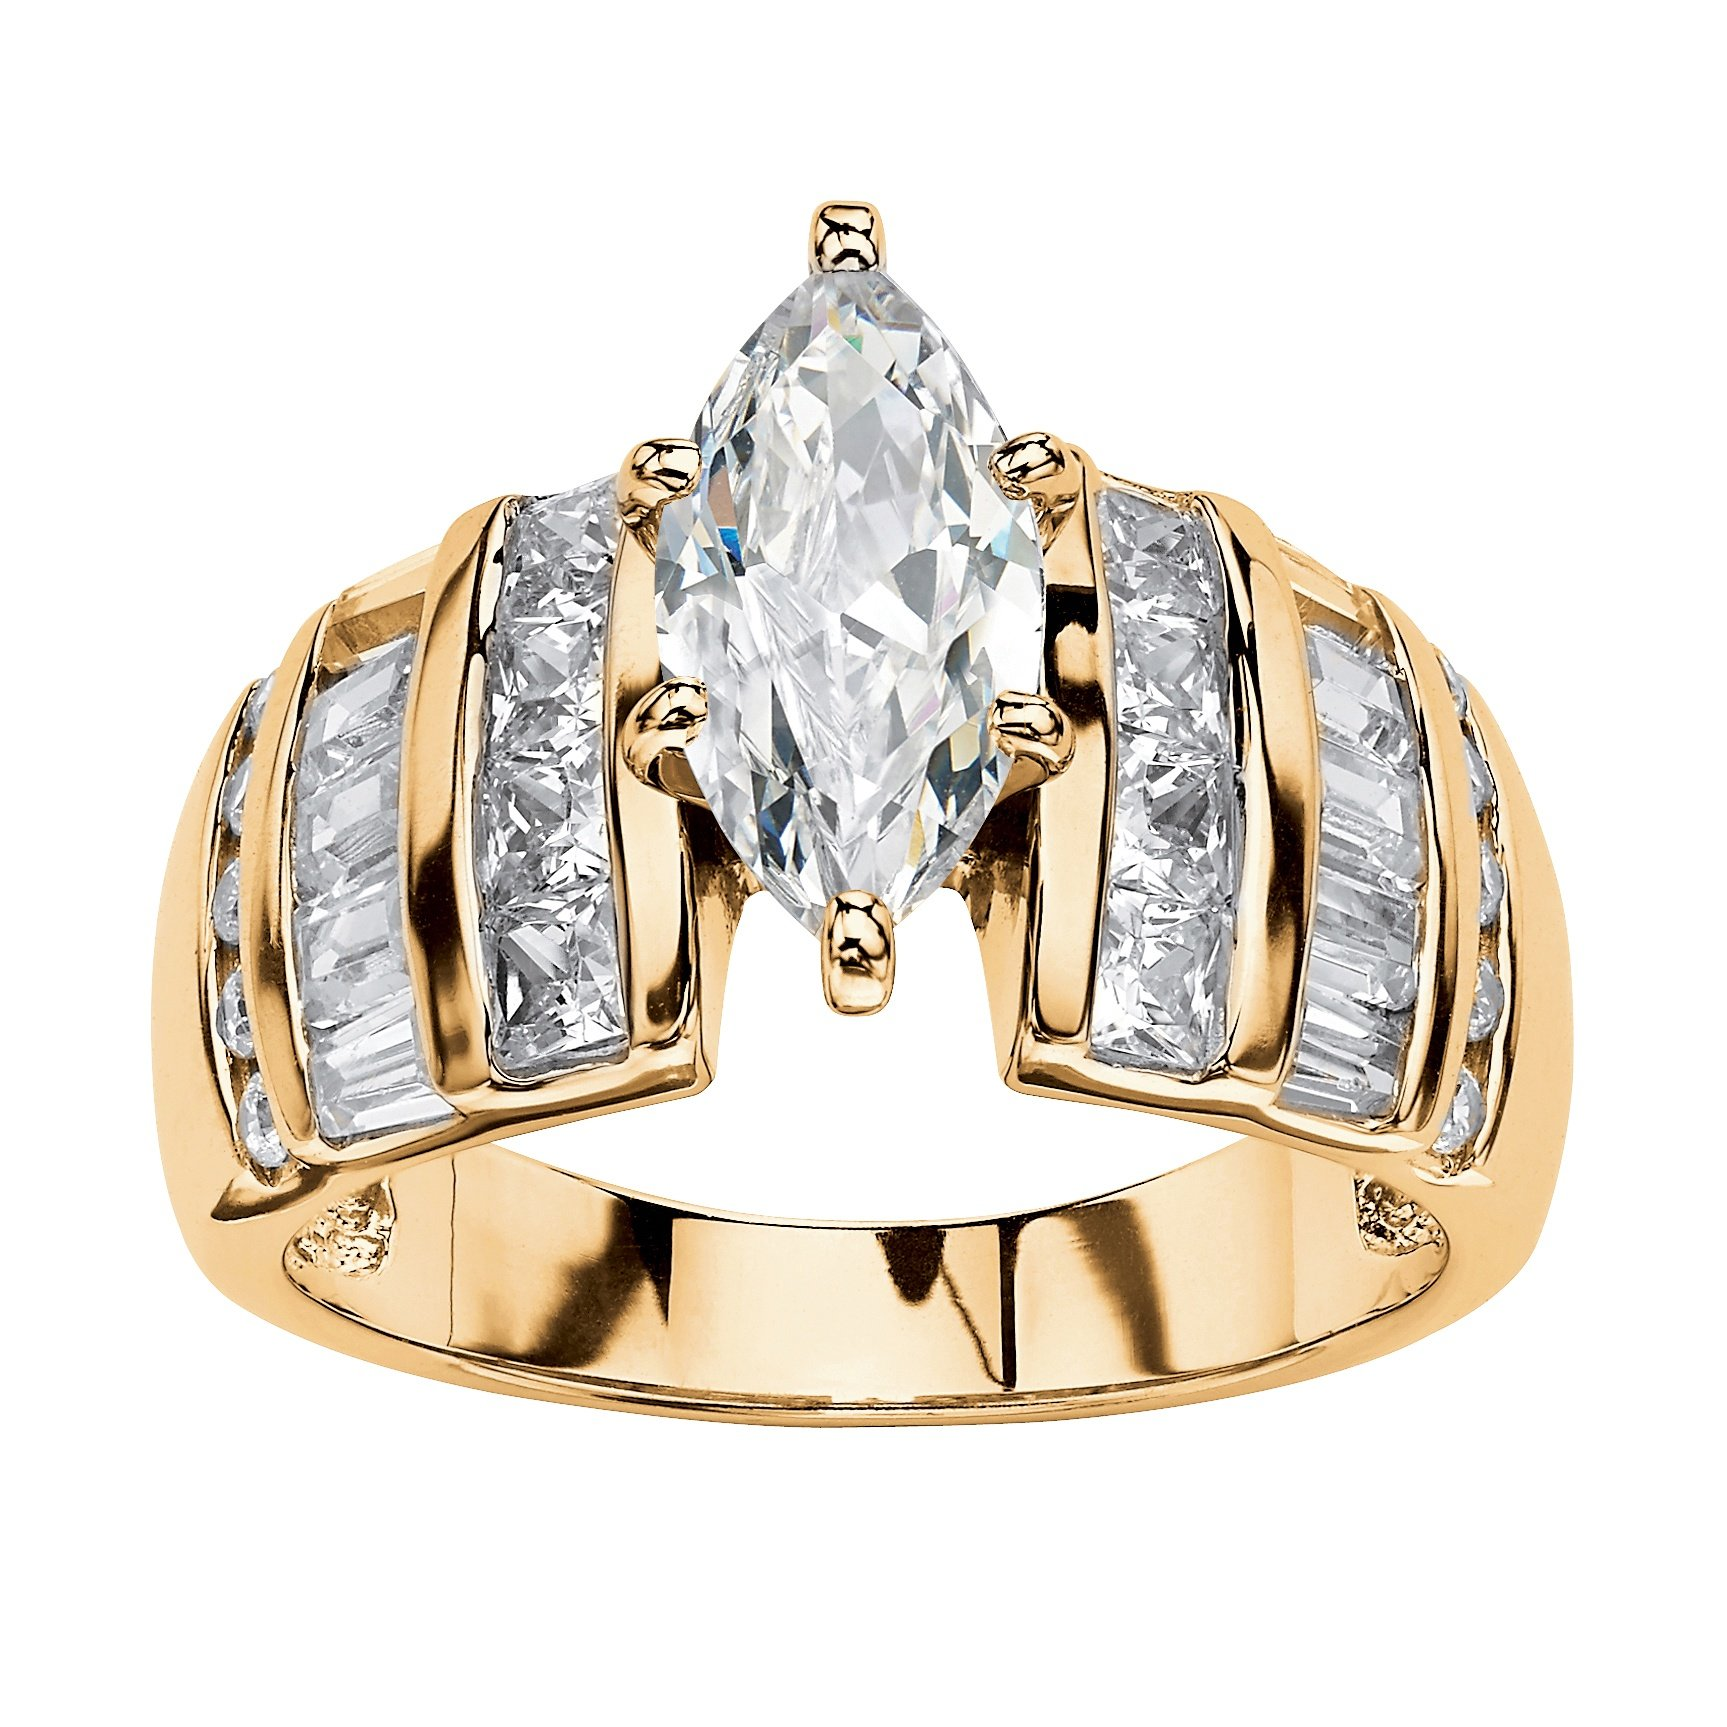 14K Yellow Gold over Sterling Silver Marquise Cut Cubic Zirconia Step Top Engagement Ring Size 9